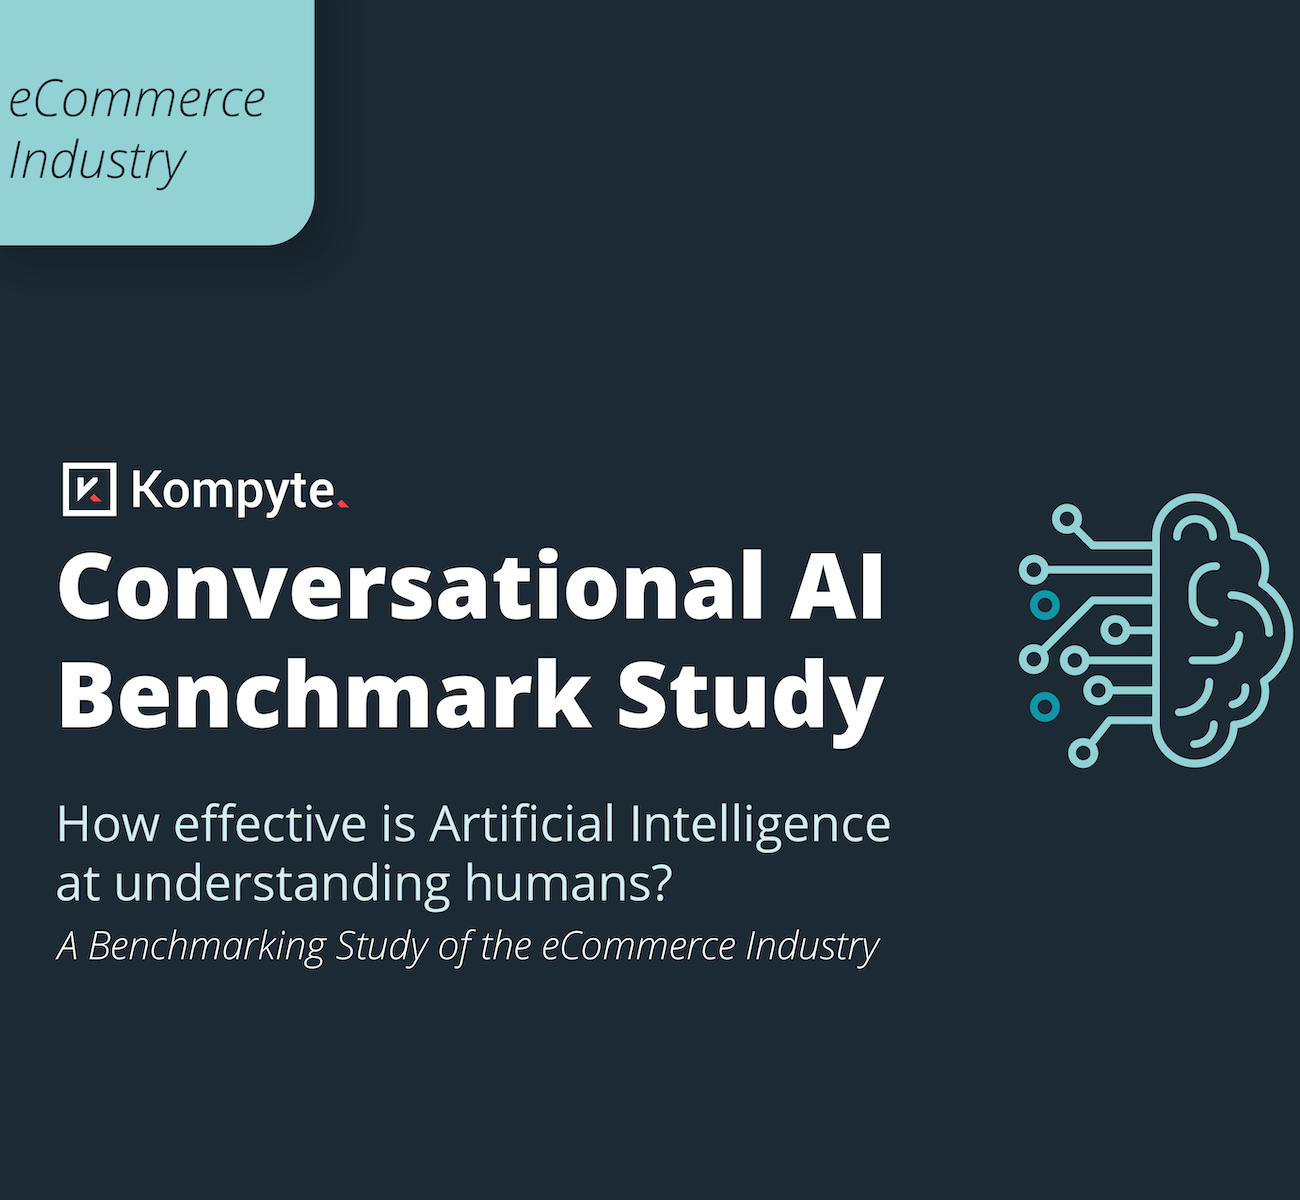 Conversational AI Benchmark In eCommerce